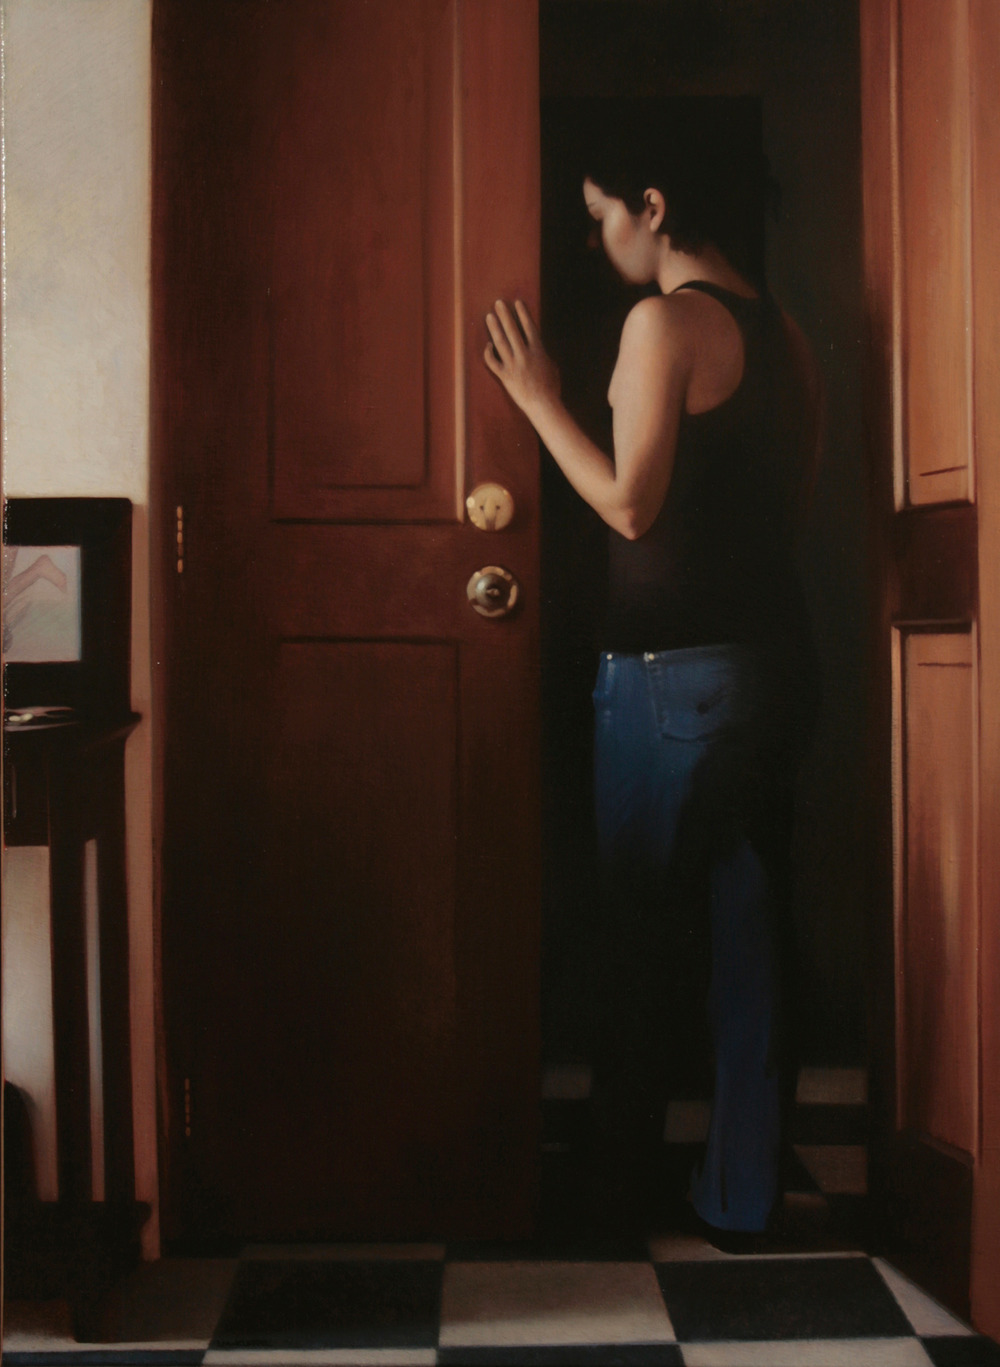 Evanesce, 2010, Oil on linen, 30 x 22 inches, Private collection